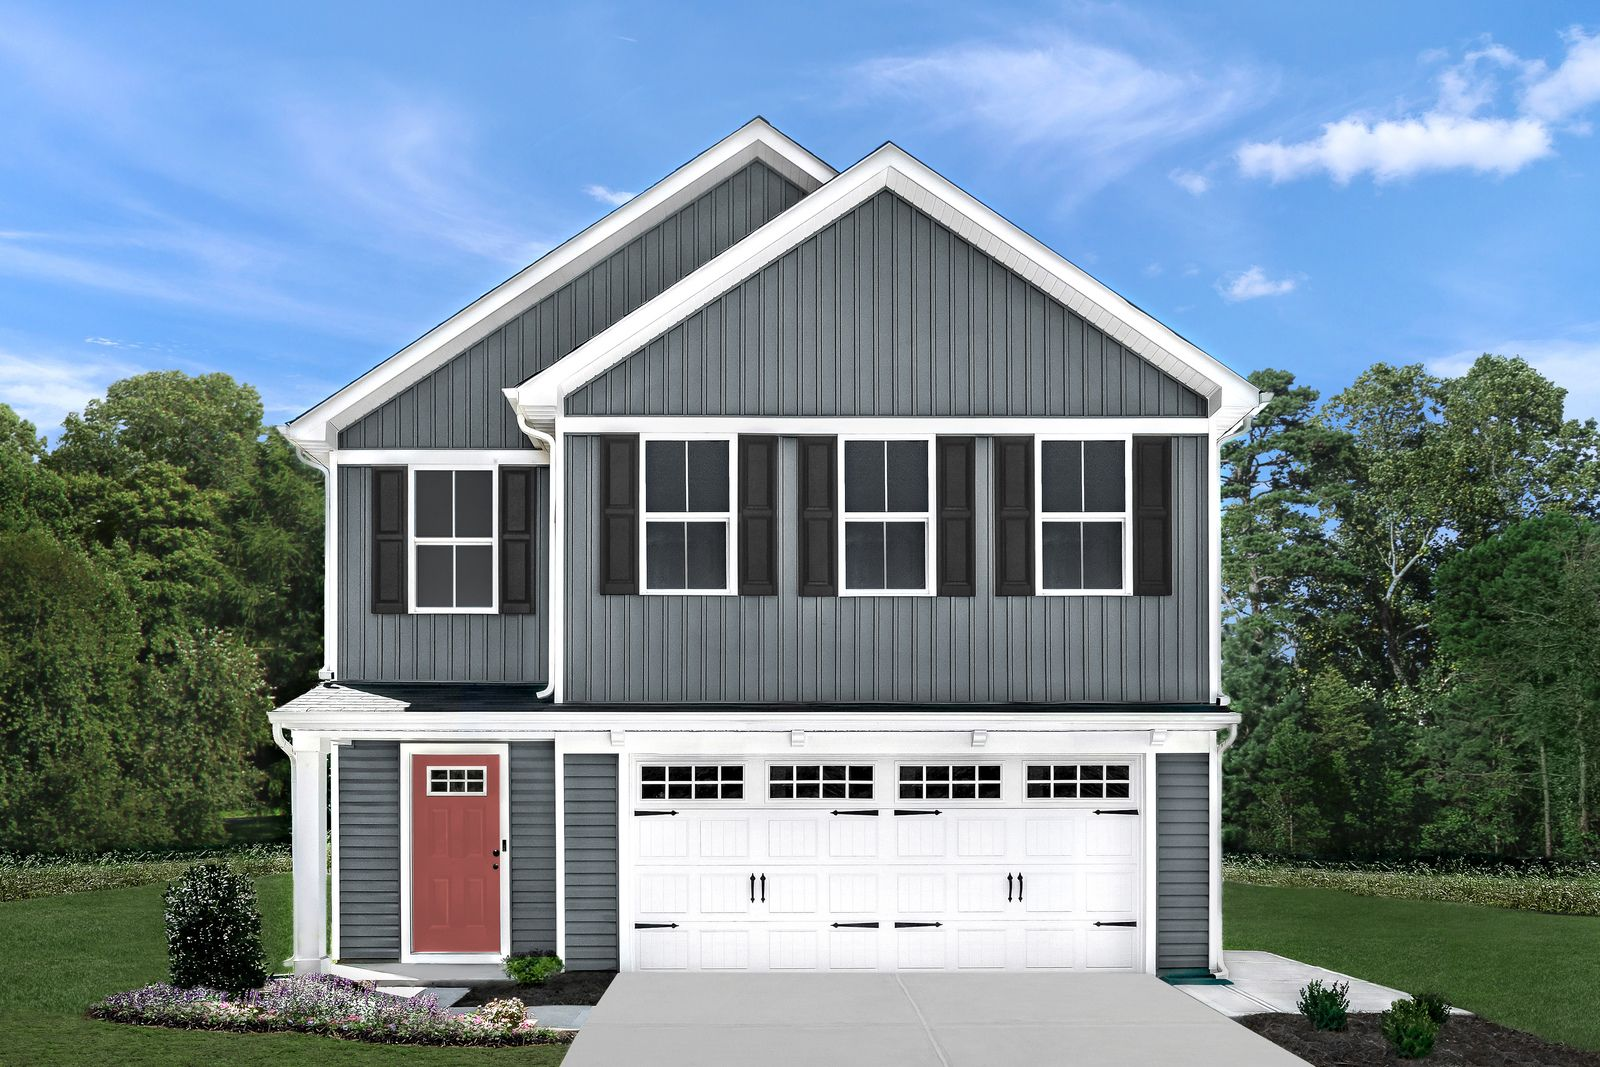 WELCOME HOME TO CHESTNUT RUN:Lowest priced 2-story homes in Marysville attached to Eljer Park, 4-5 beds, landscaped yard included, little to no money down. Close to I-270 & US33—upper $200s.Click to schedule your visit!